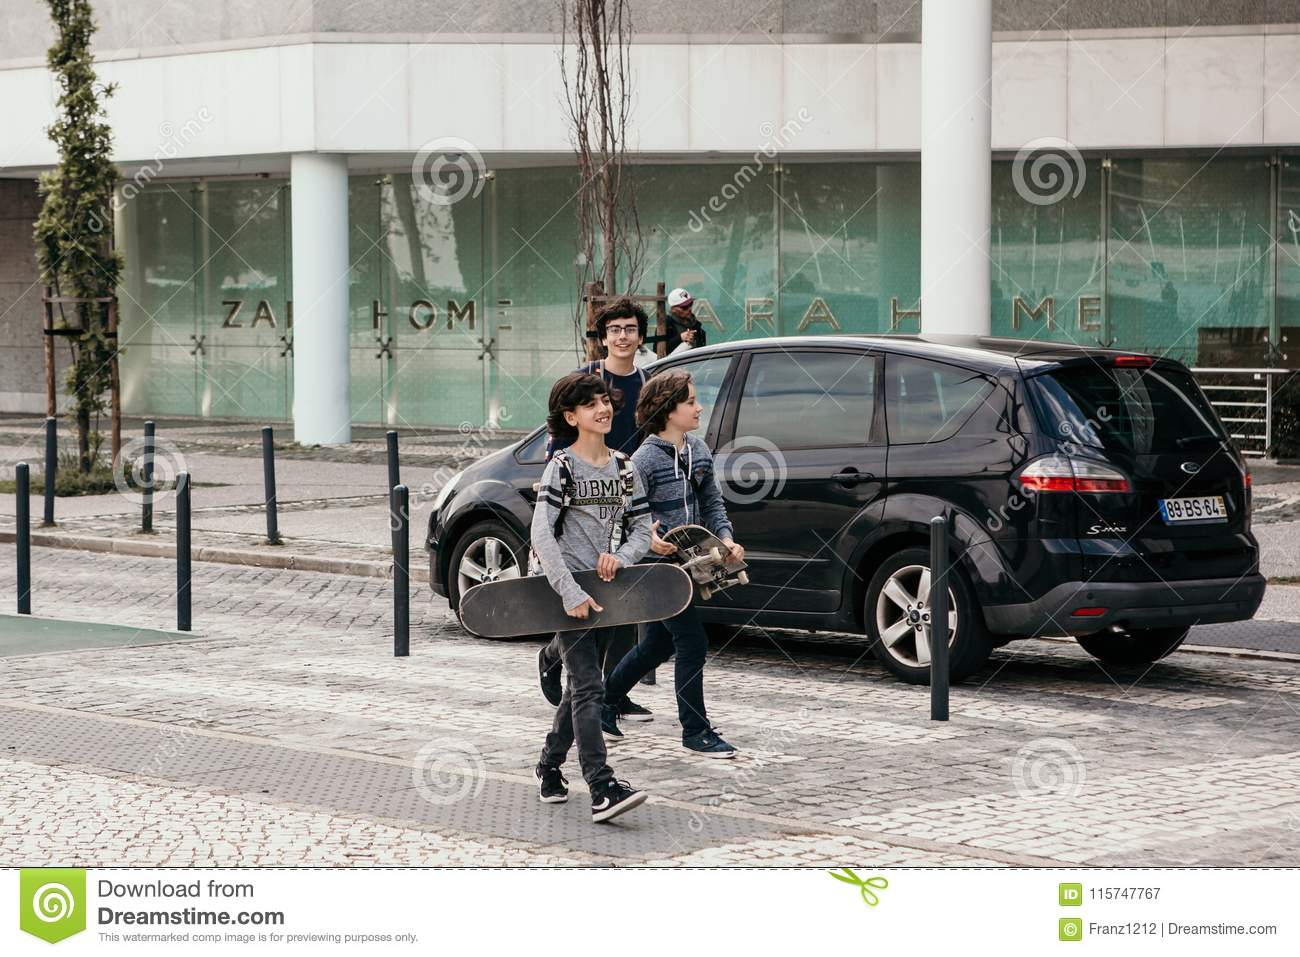 Portugal, Lisbon 29 april 2018: children or kids or teenagers walk down by street with skateboards